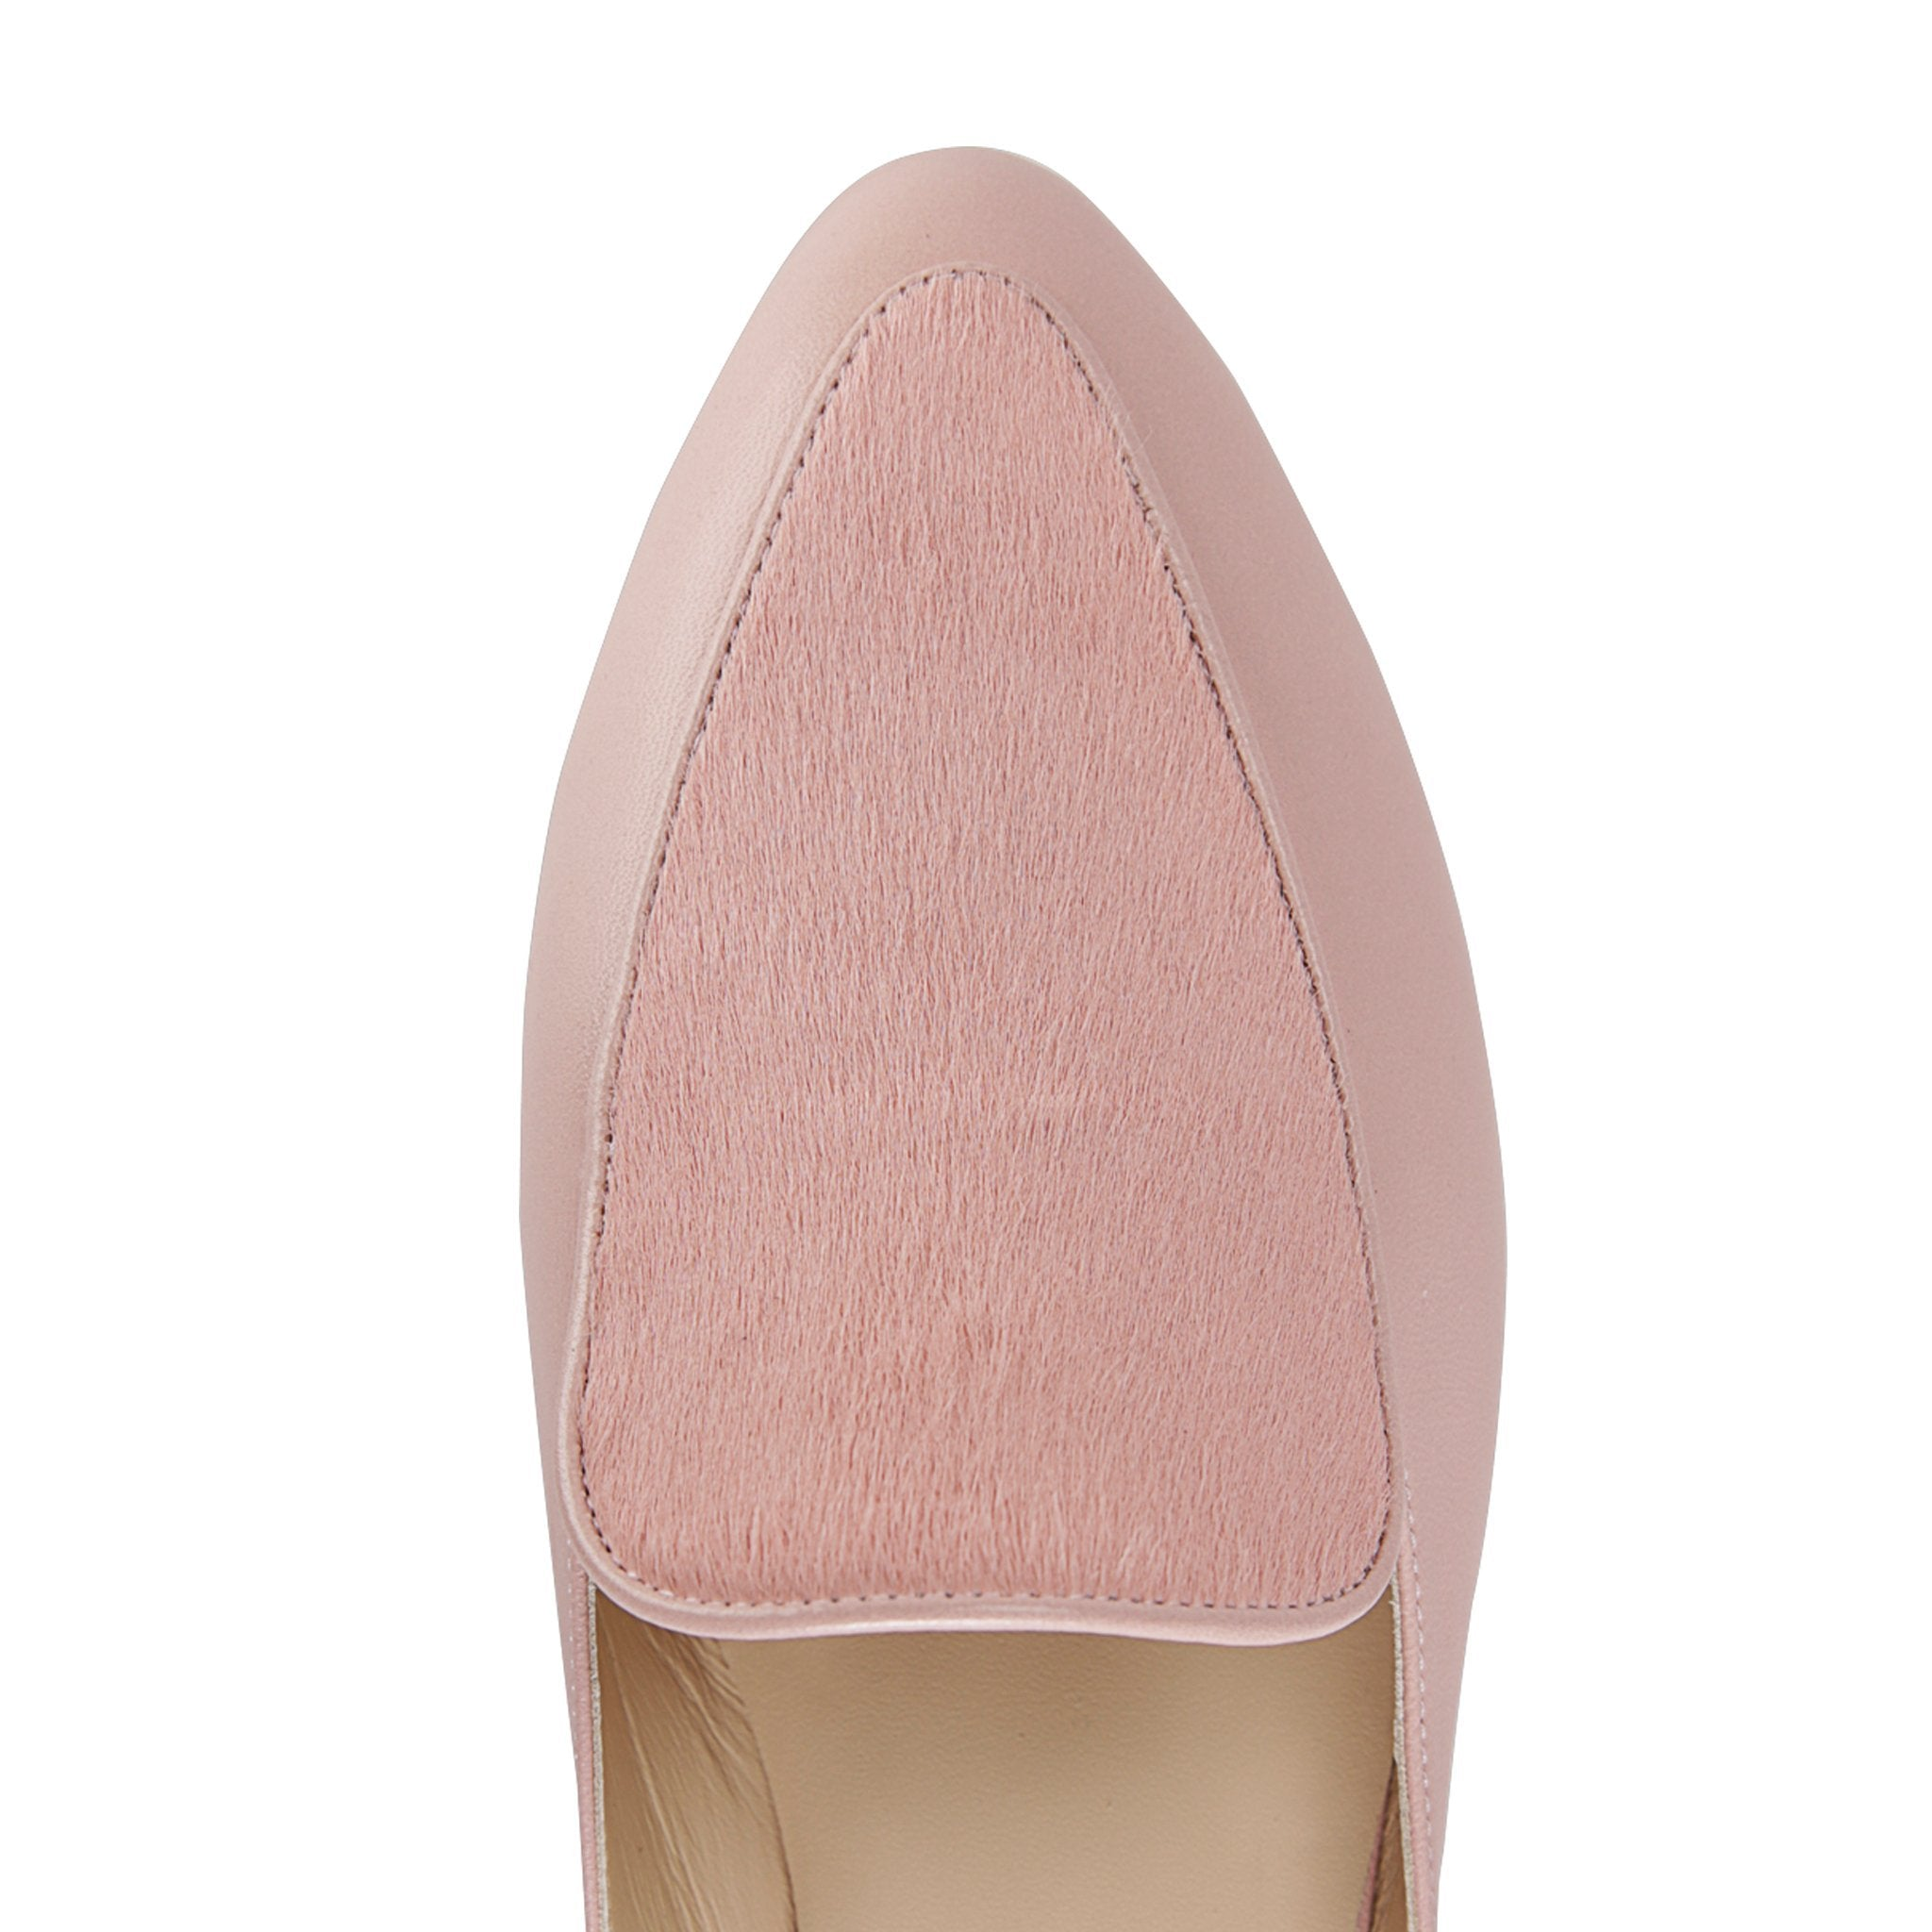 ISEO - Nappa + Calf Hair Pink, VIAJIYU - Women's Hand Made Sustainable Luxury Shoes. Made in Italy. Made to Order.